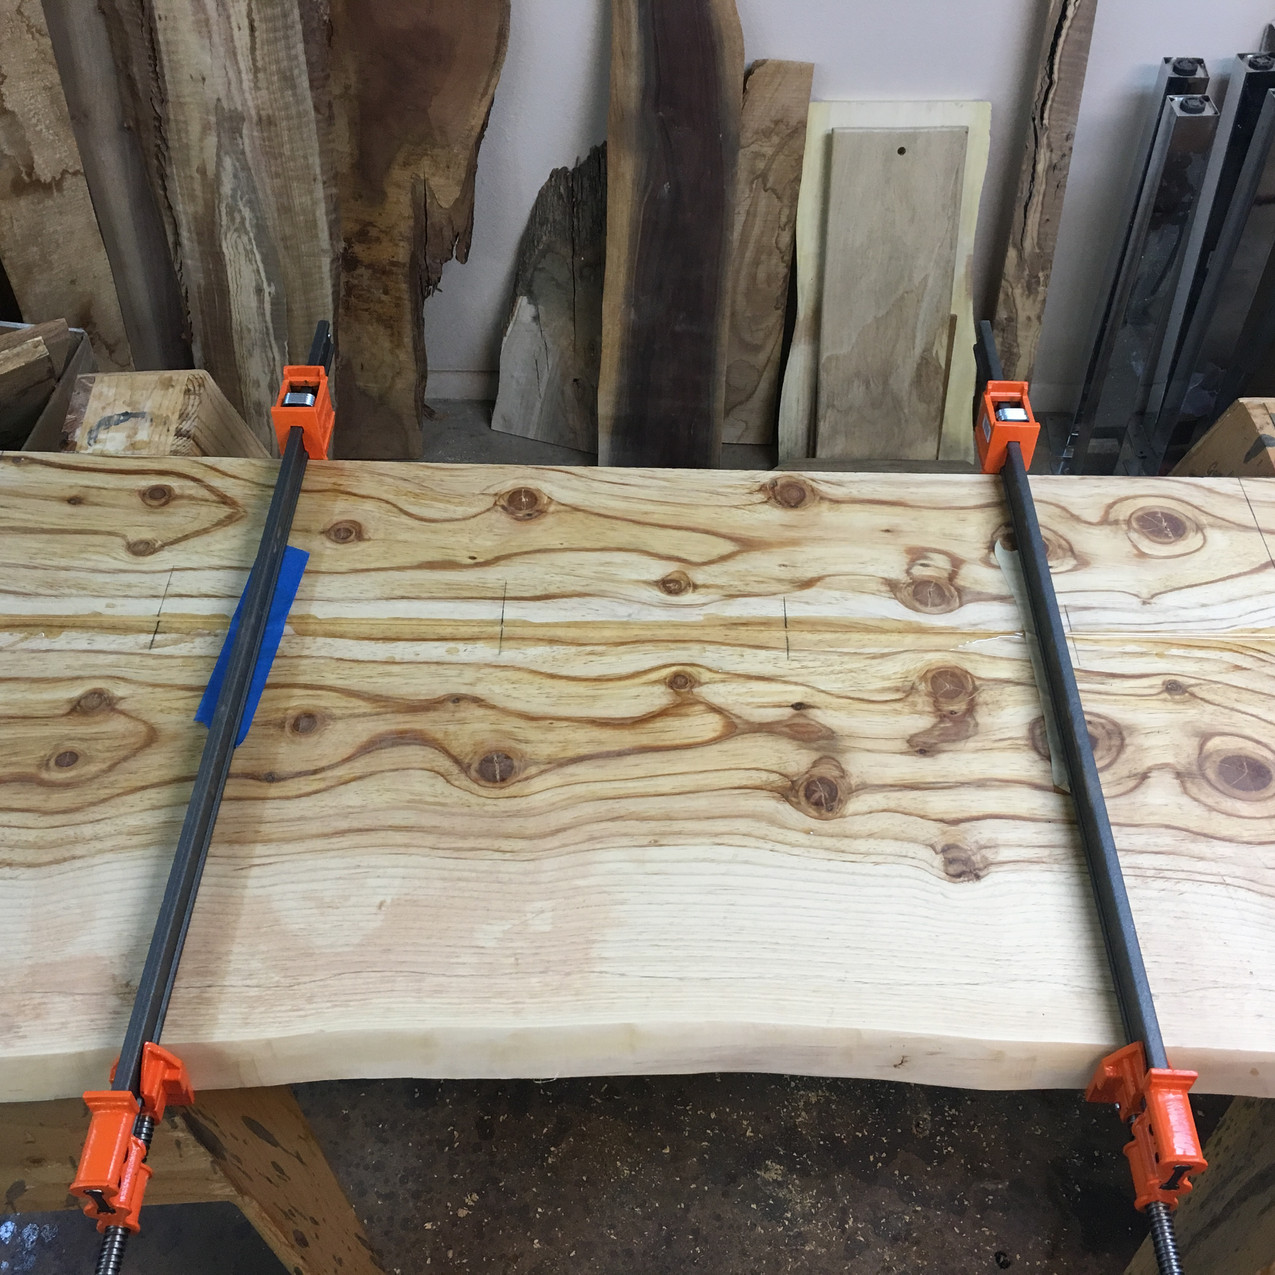 Wood dowel and resin glue up on these bookmatched canary island live edge pine slabs